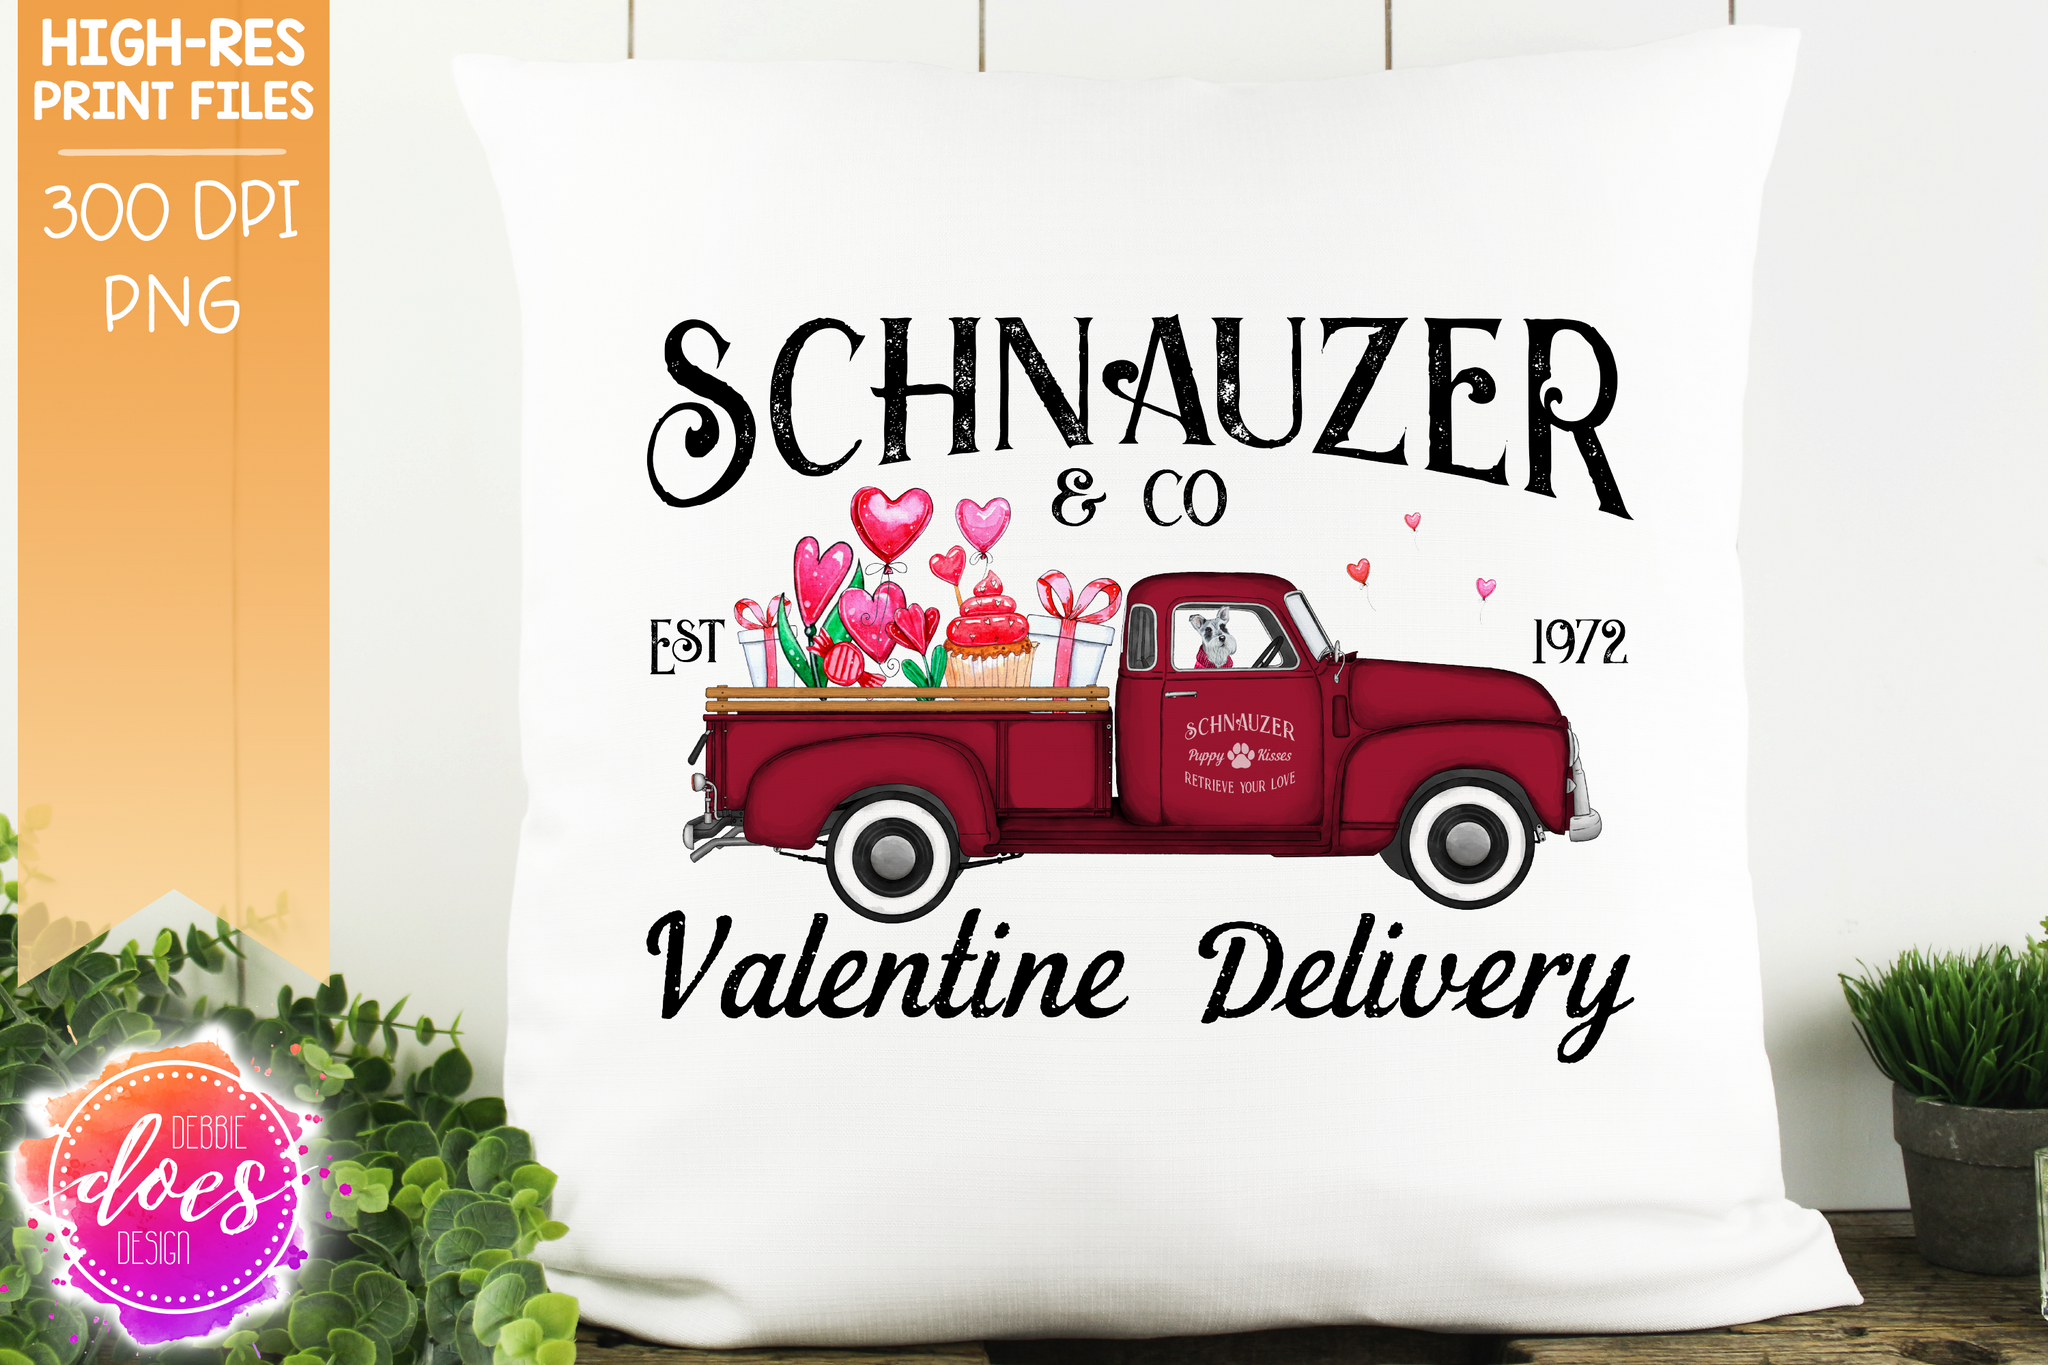 Schnauzer - Dog Valentines Delivery Truck  - Sublimation/Printable Design